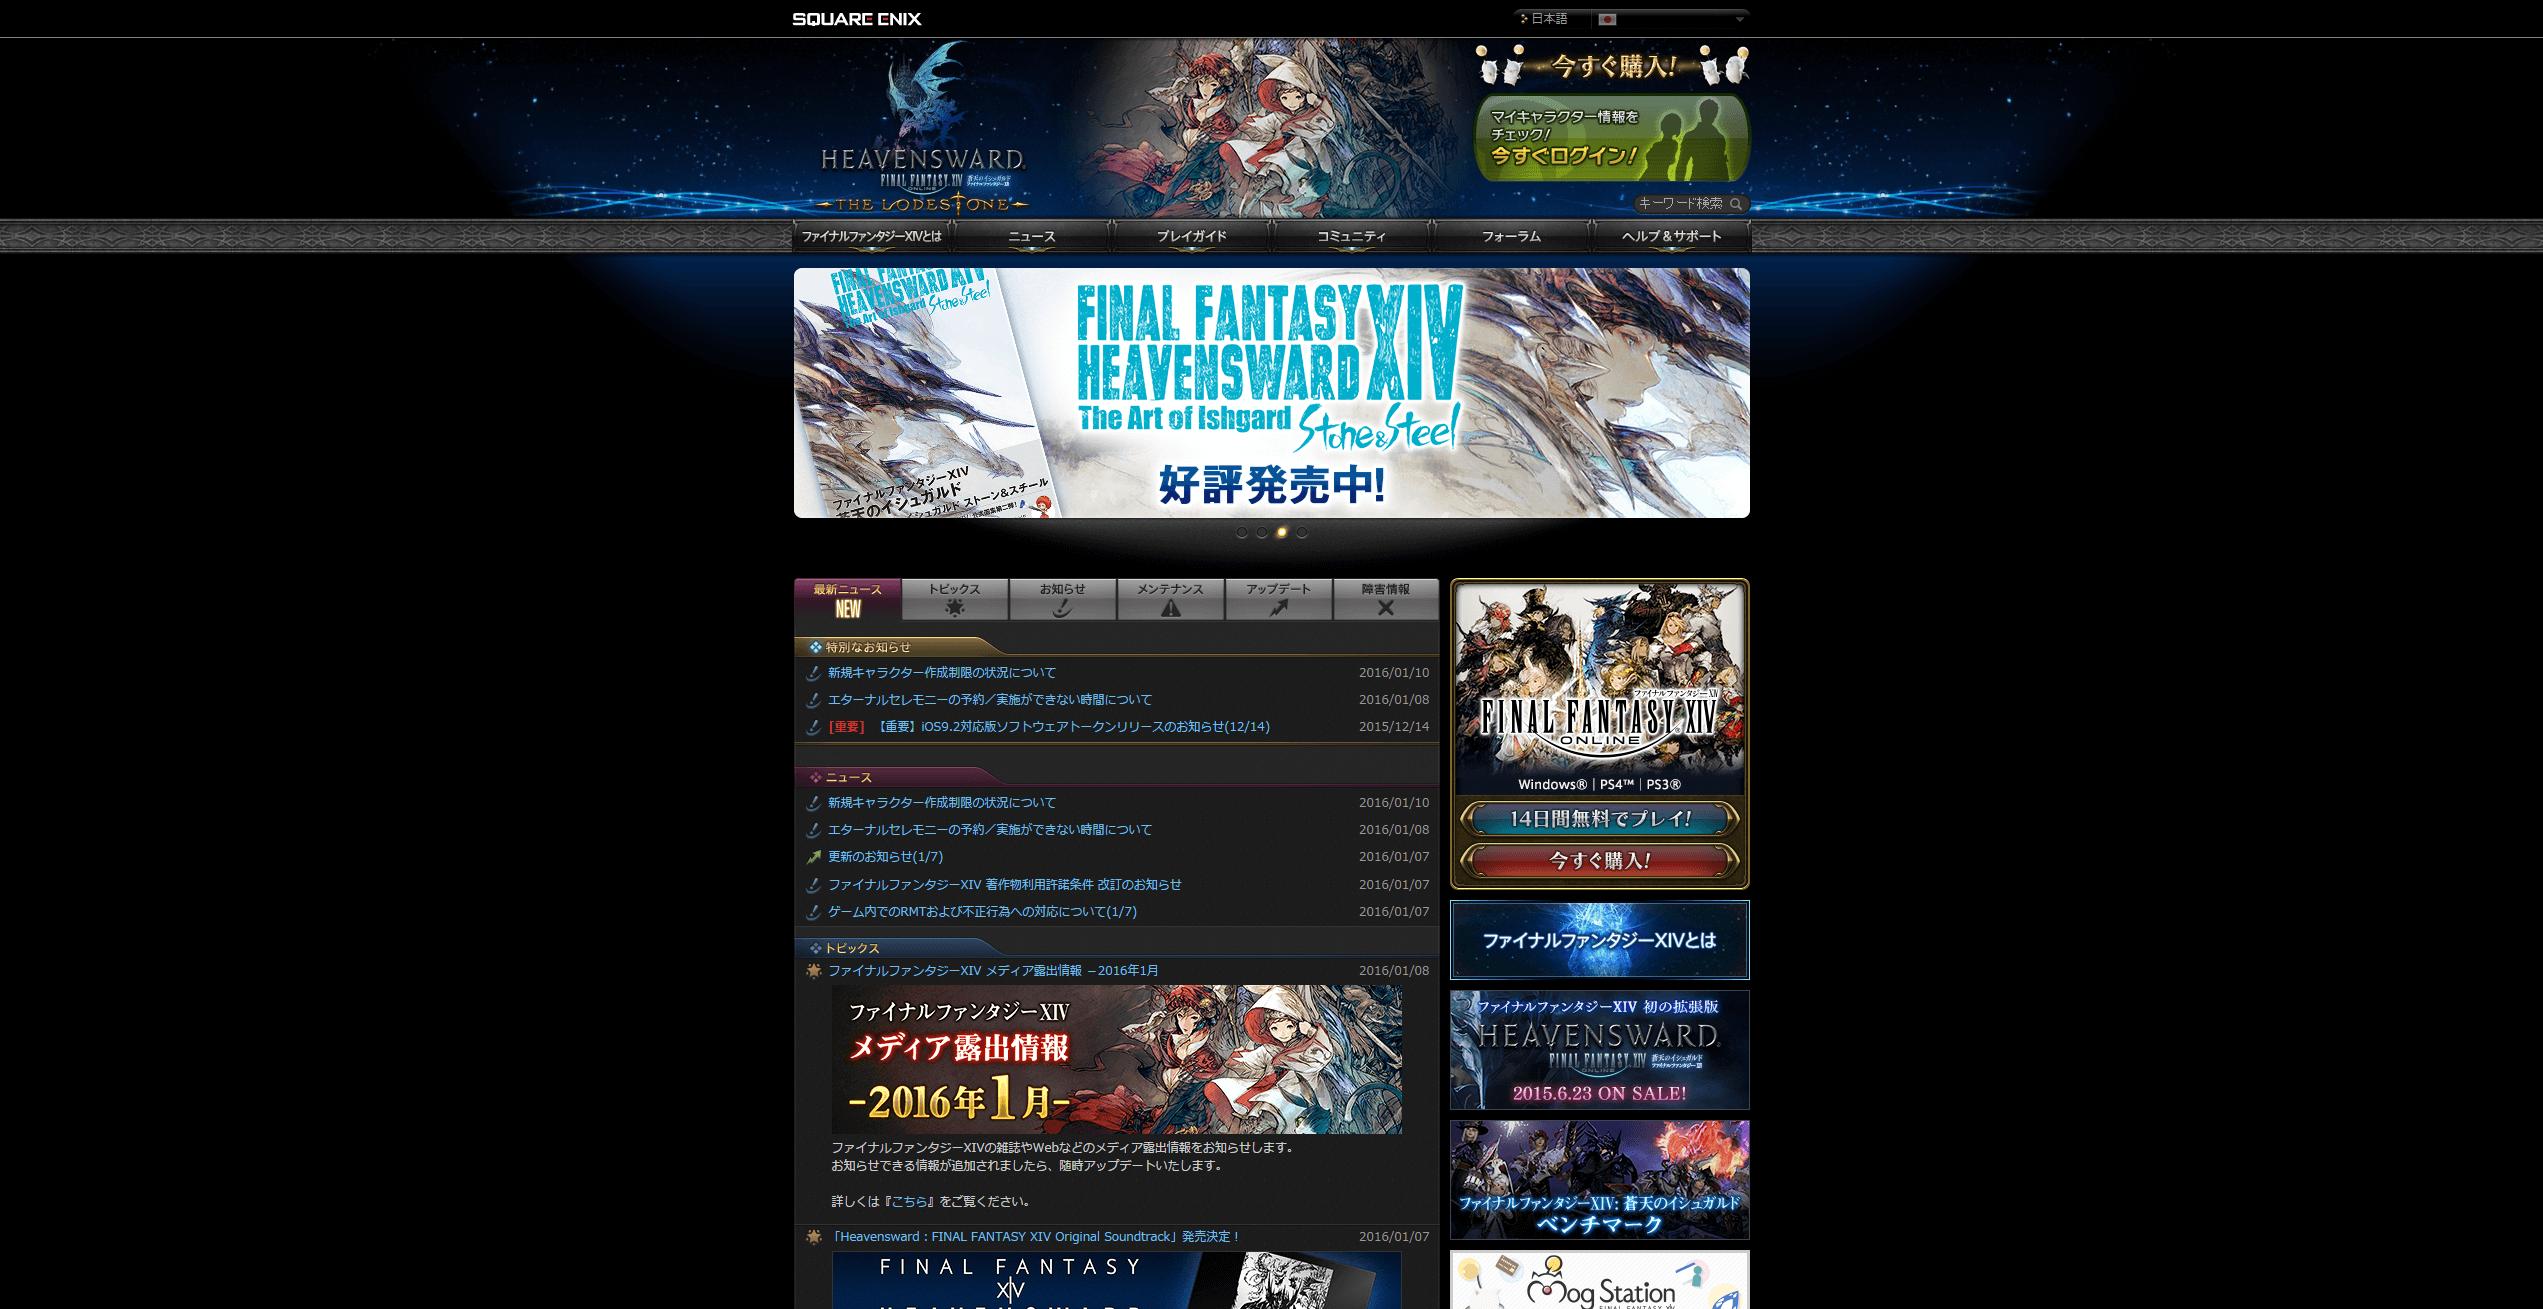 FINAL FANTASY XIV, The Lodestone トップページ